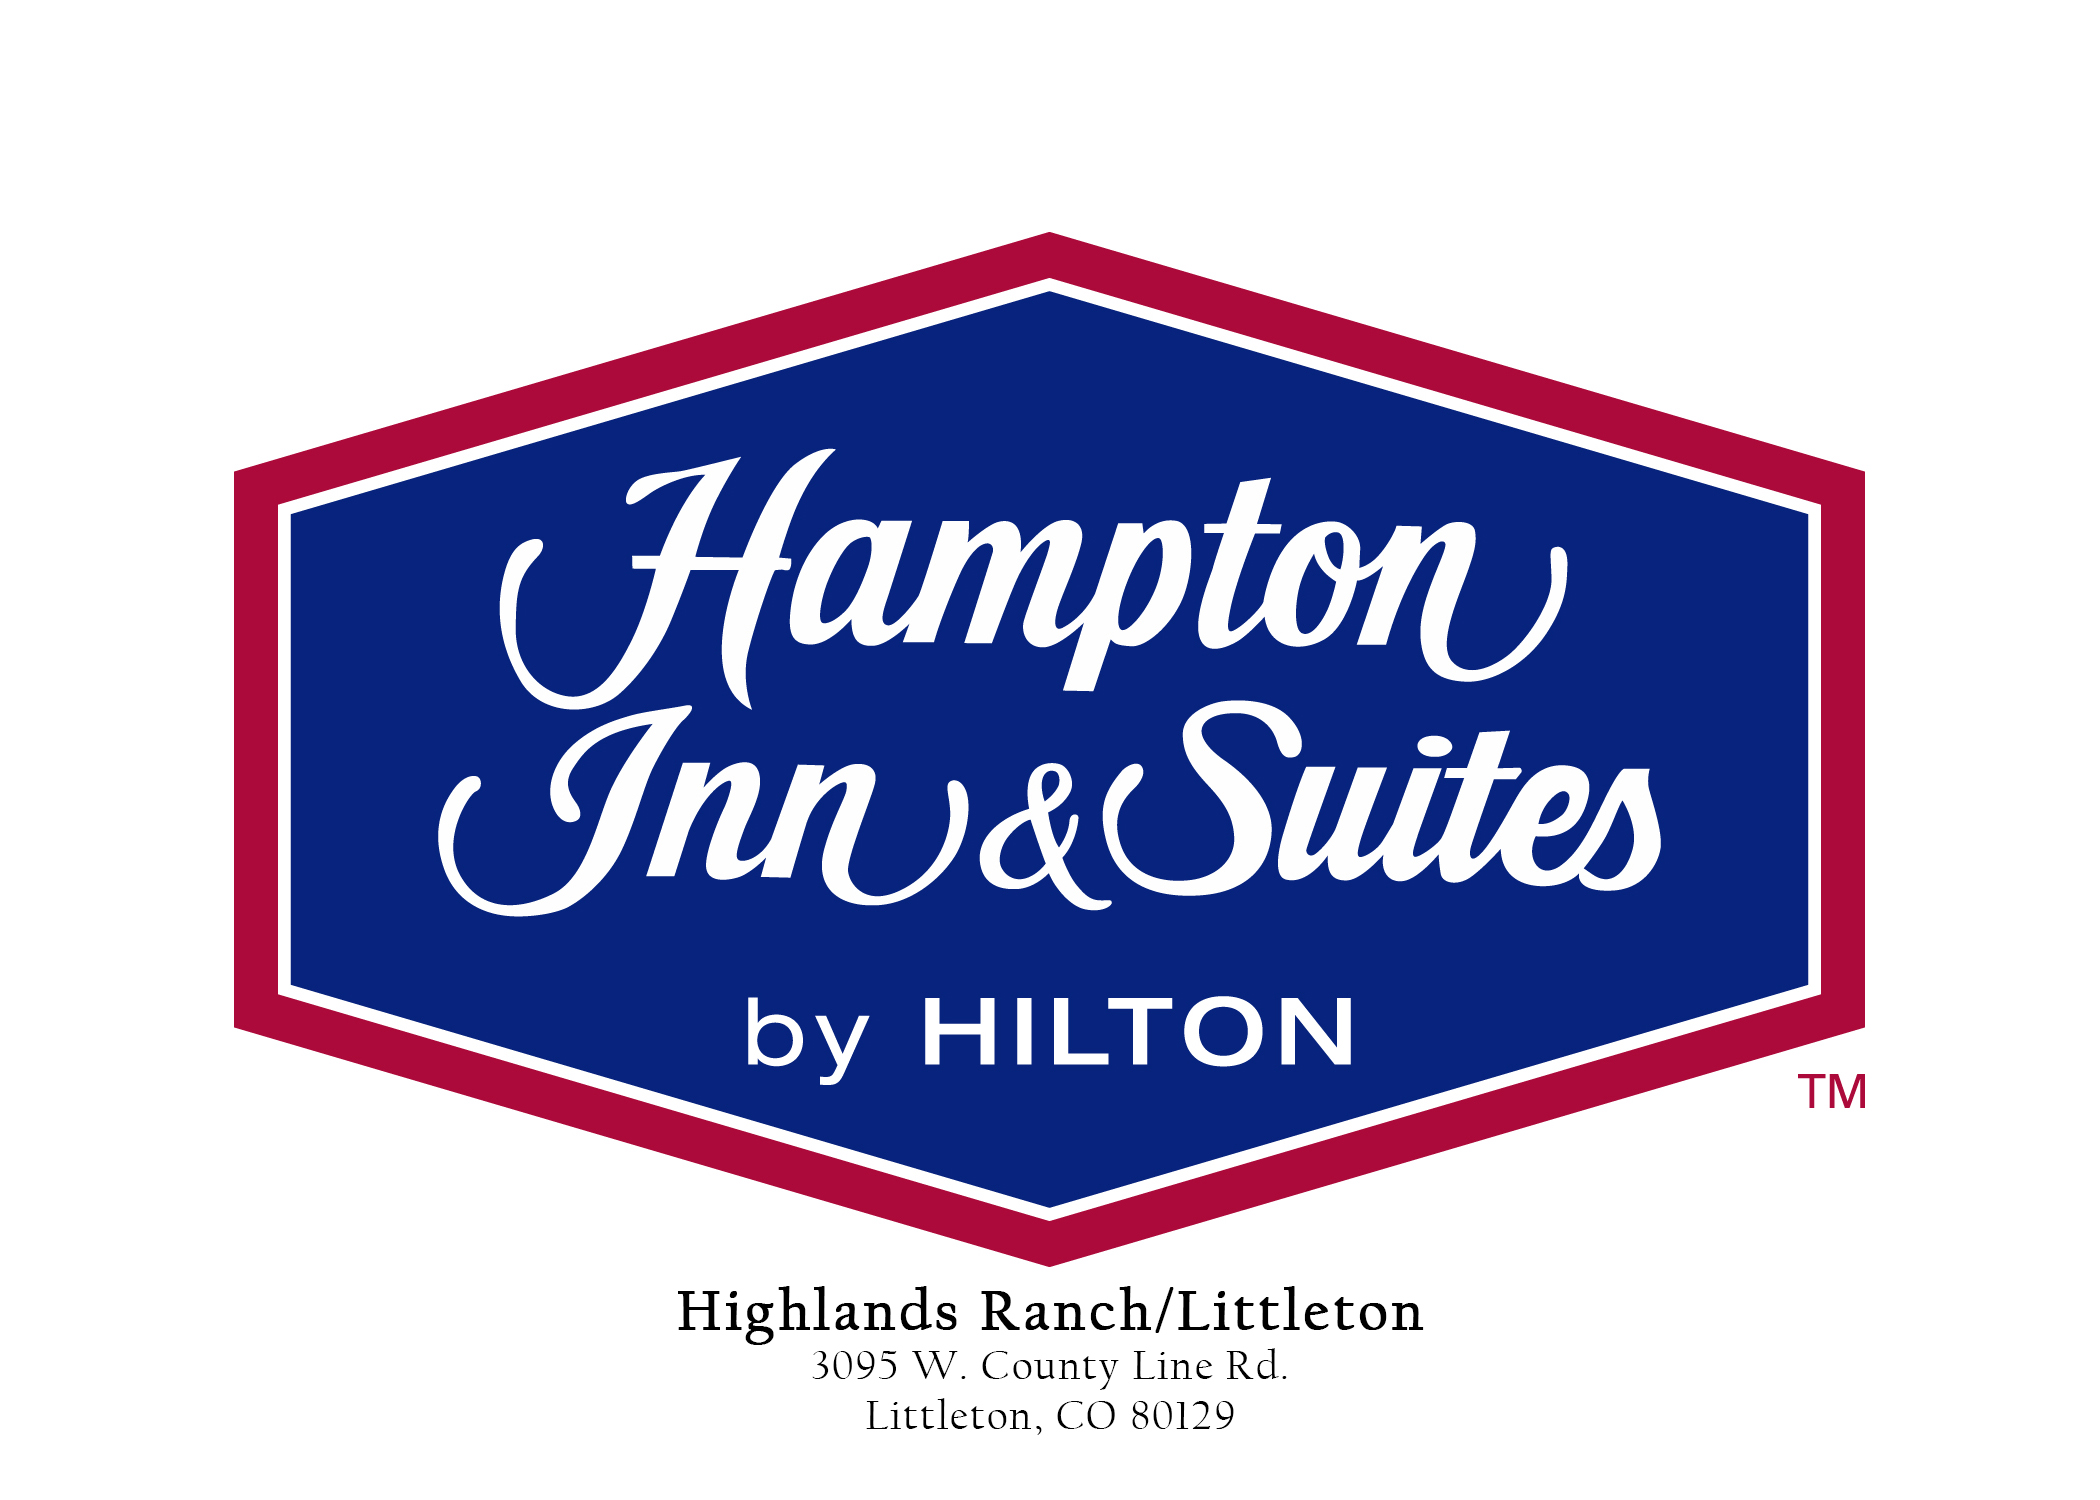 Hampton Inn & Suites by Hilton - Highlands Ranch/Littleton